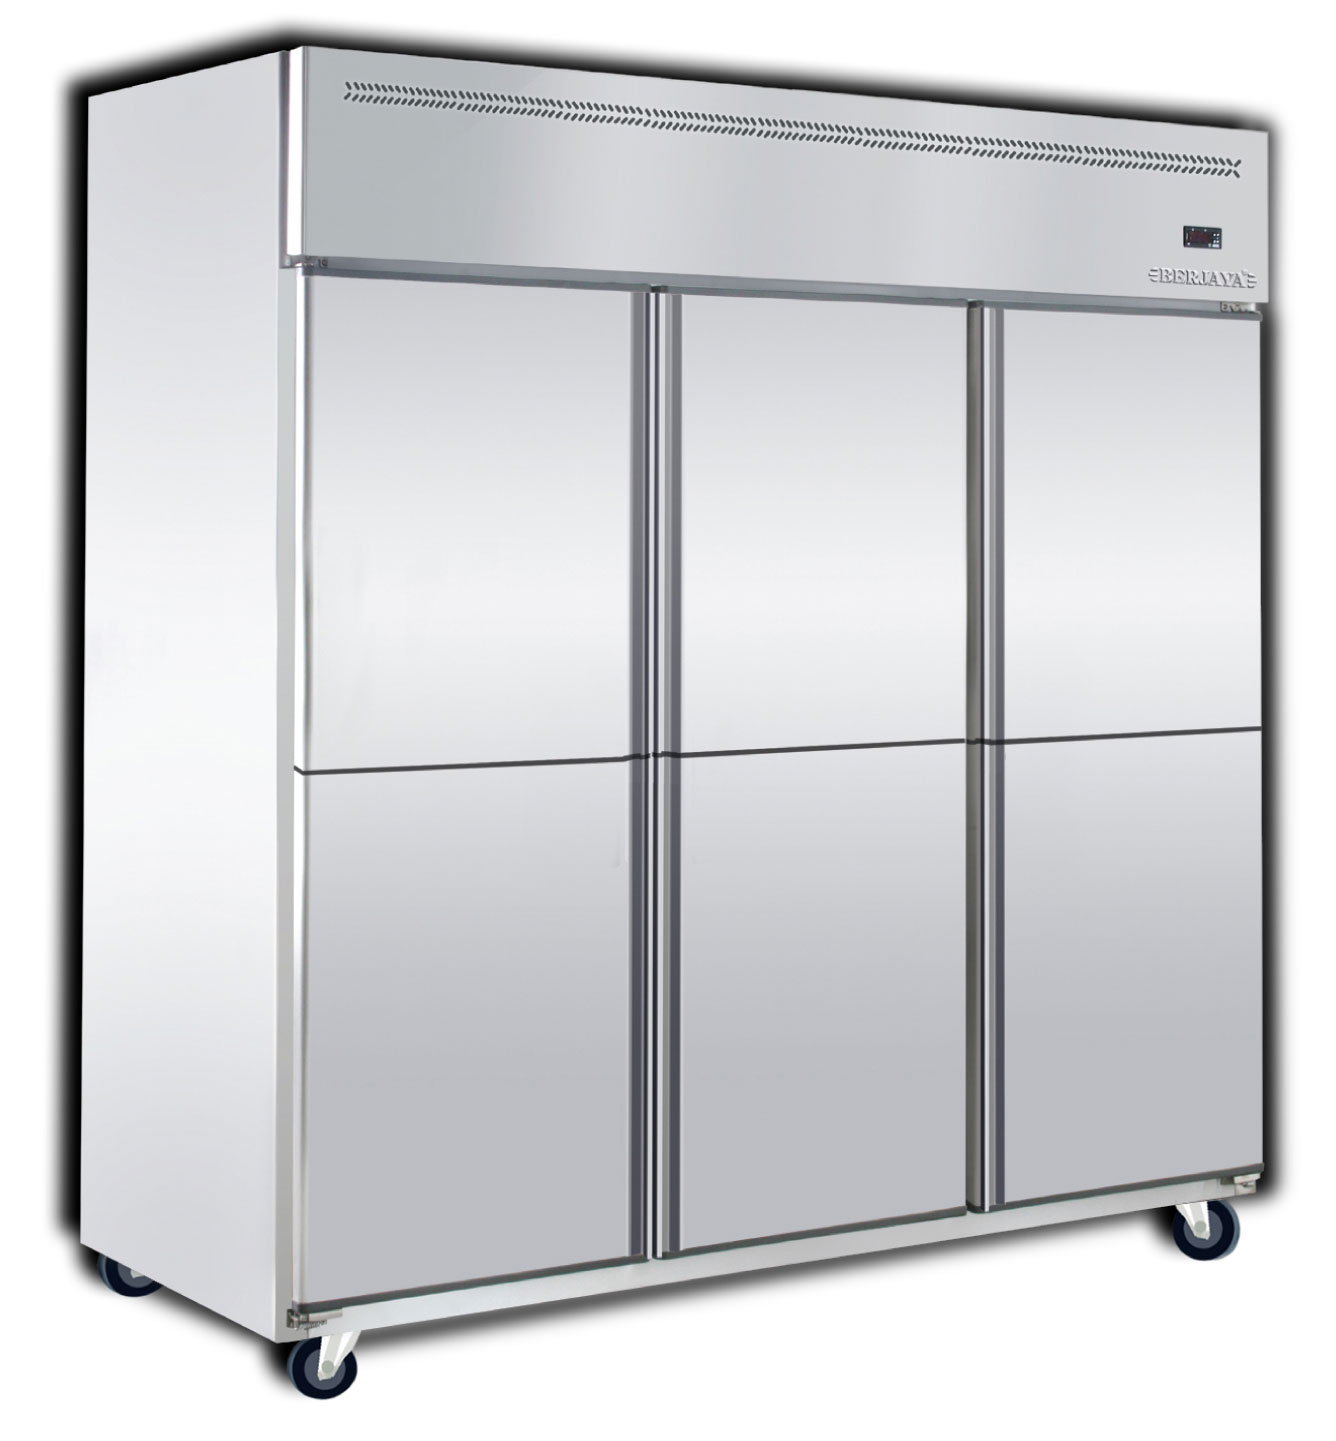 Vertical Freezers For Sale Quality Traders Proud Importers Of Berjaya Refrigeration Equipment